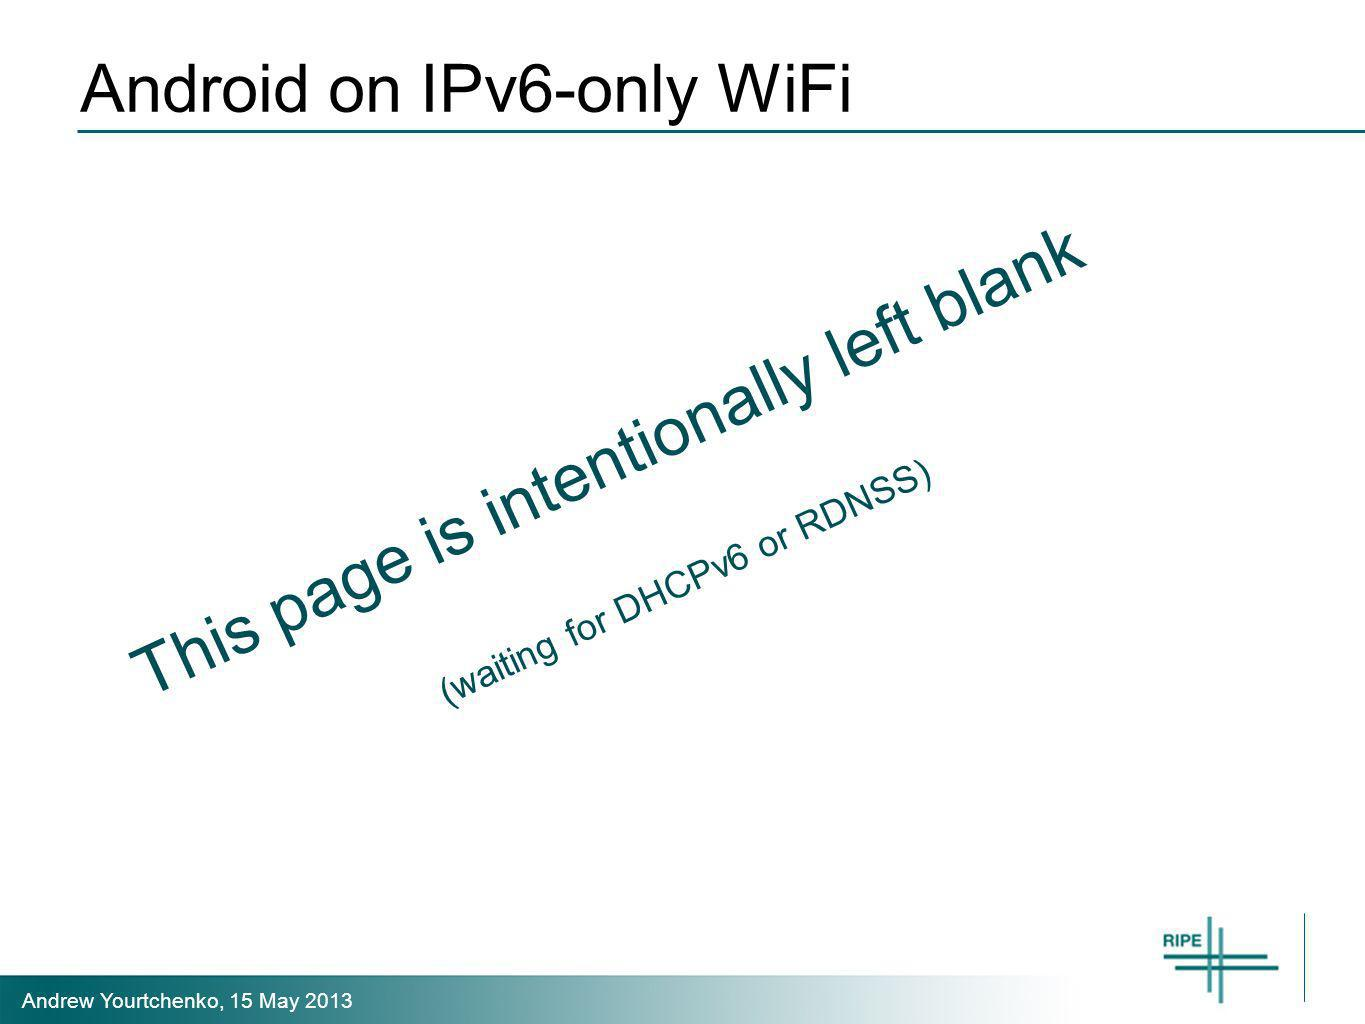 Andrew Yourtchenko, 15 May 2013 Android on IPv6-only WiFi This page is intentionally left blank (waiting for DHCPv6 or RDNSS)